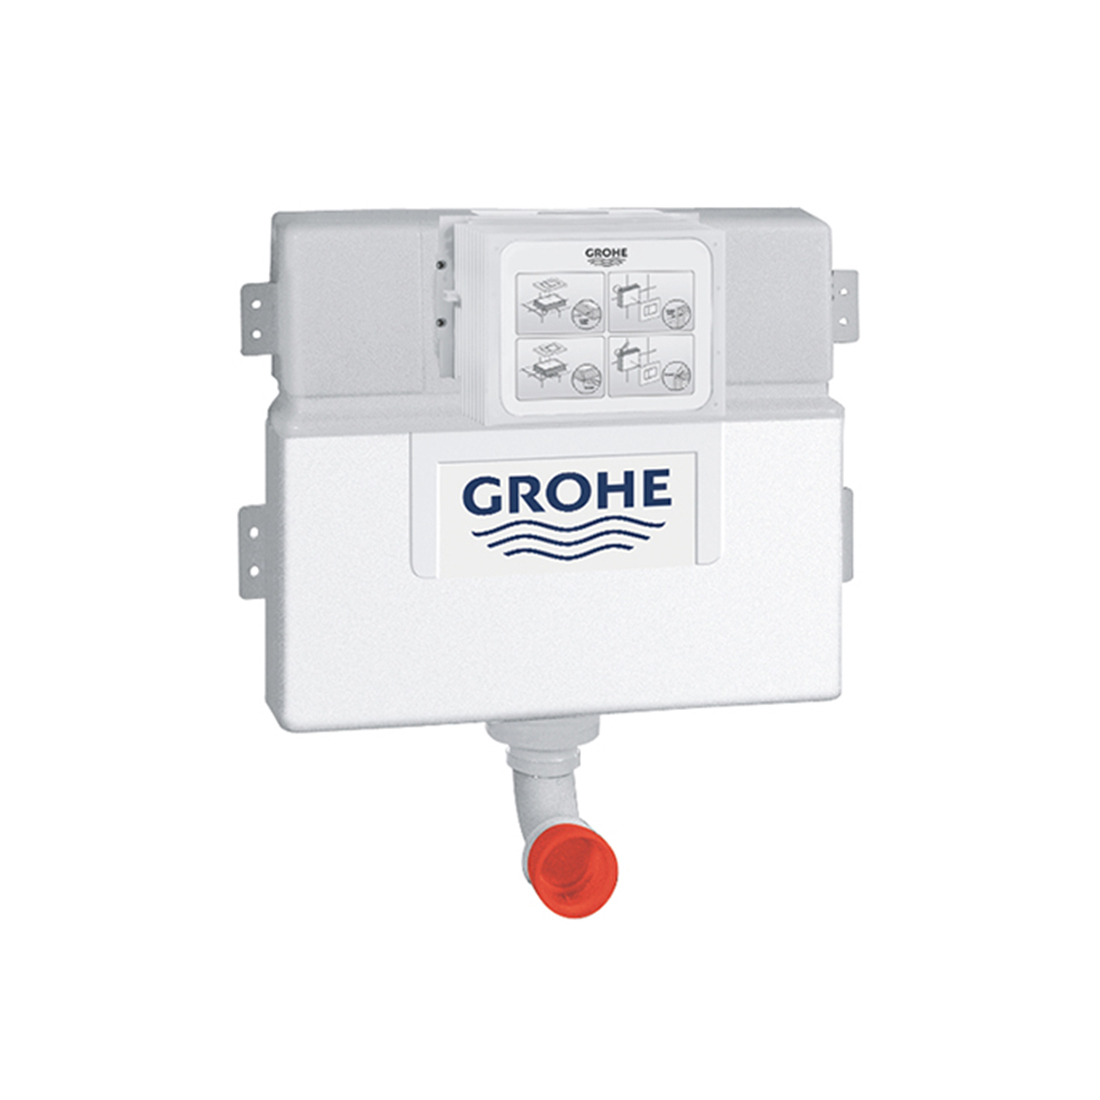 Grohe 38422000 Flushing Cistern for WC